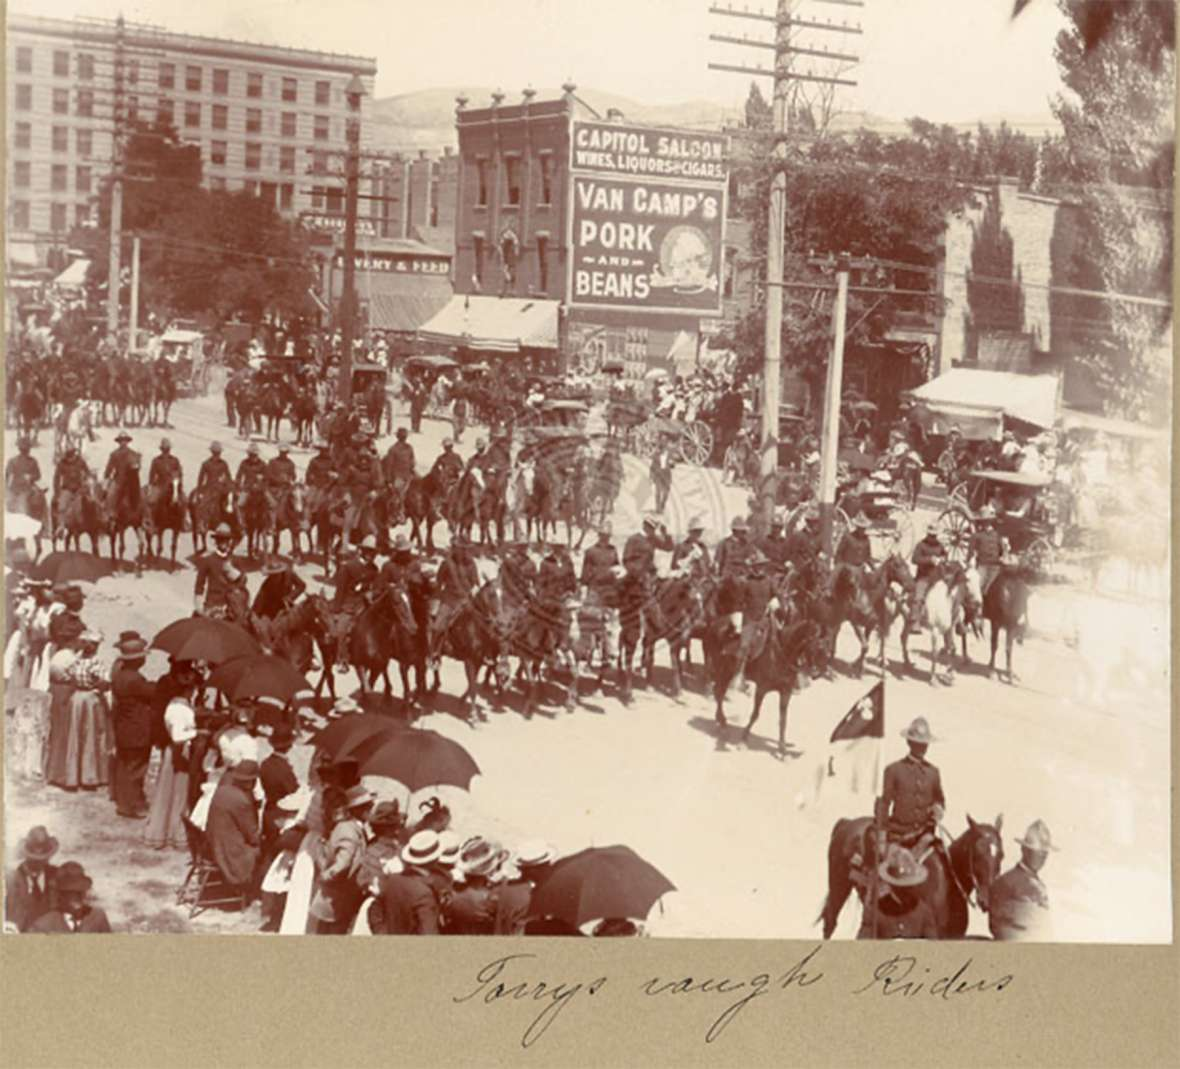 Members of Torrey's Rough Riders on parade in Salt Lake City. These may be the Utah units of the Second Volunteer Cavalry that returned to Salt Lake in August 1898. Marriott Library, University of Utah.